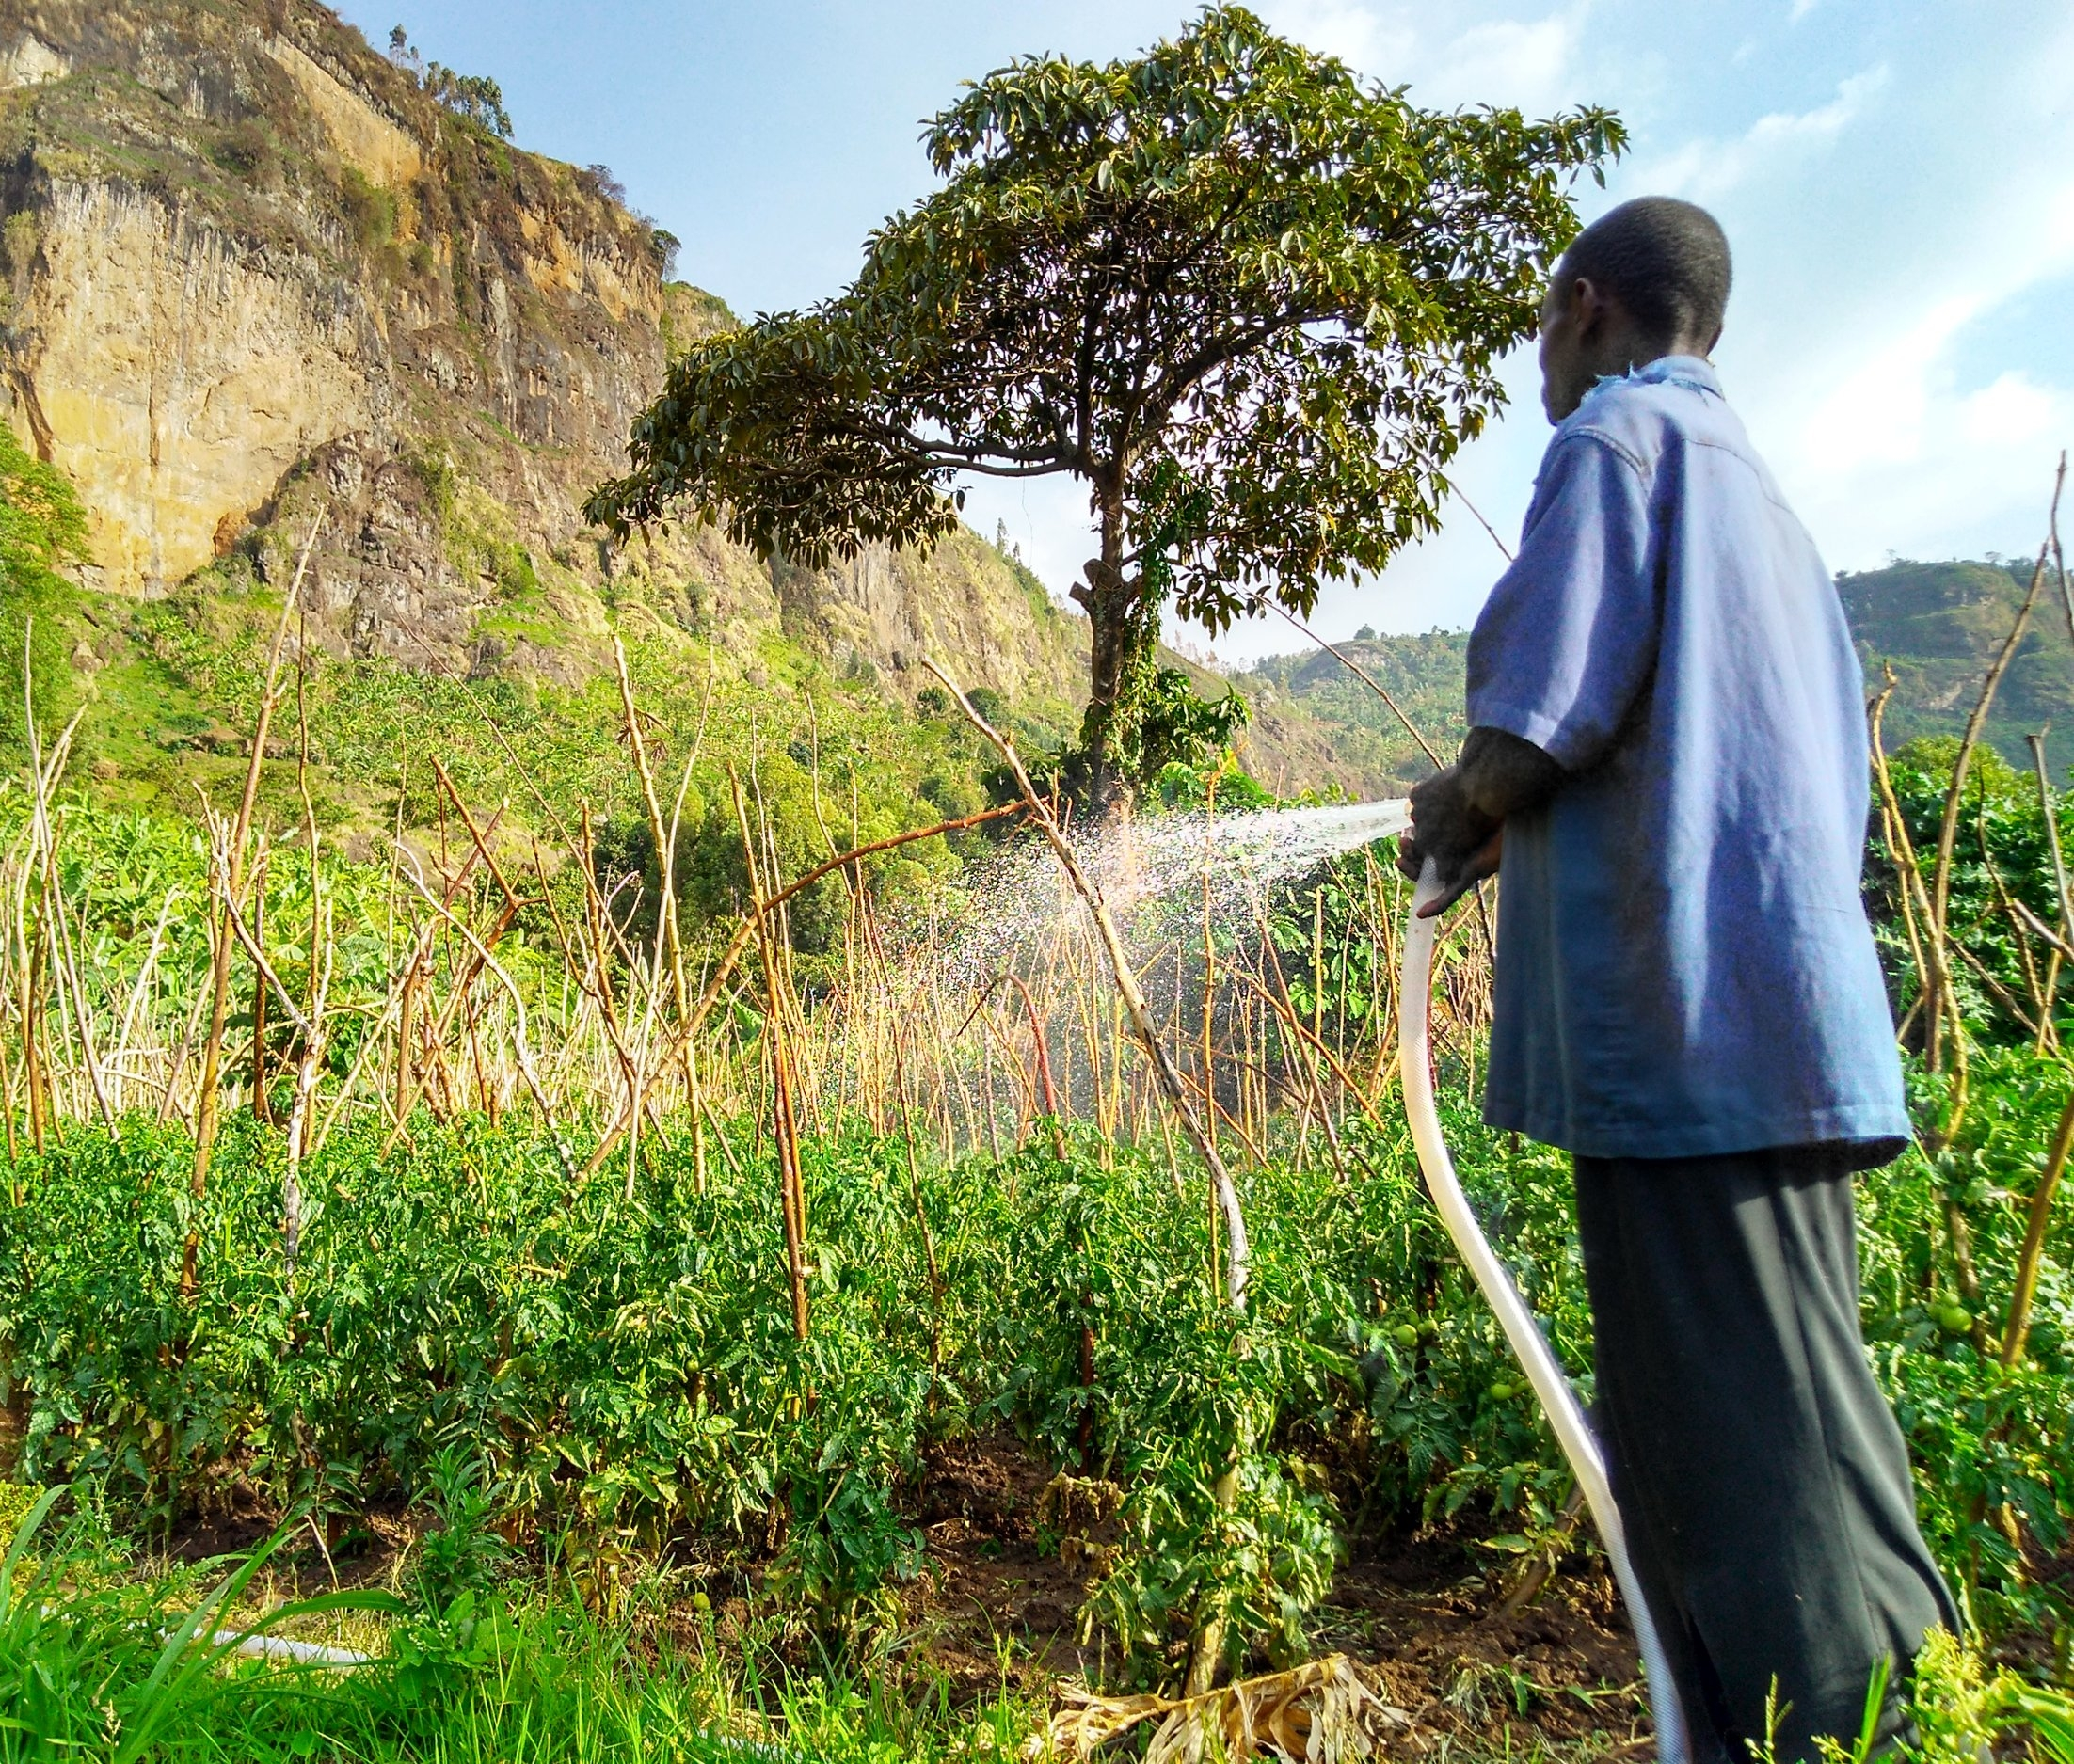 Gravity-fed irrigation   A Lwasso farmer irrigates his tomato garden using the gridded drag hose system, which is pressurized by the rock head tank positioned uphill from the plots at the base of a cliff and waterfall.